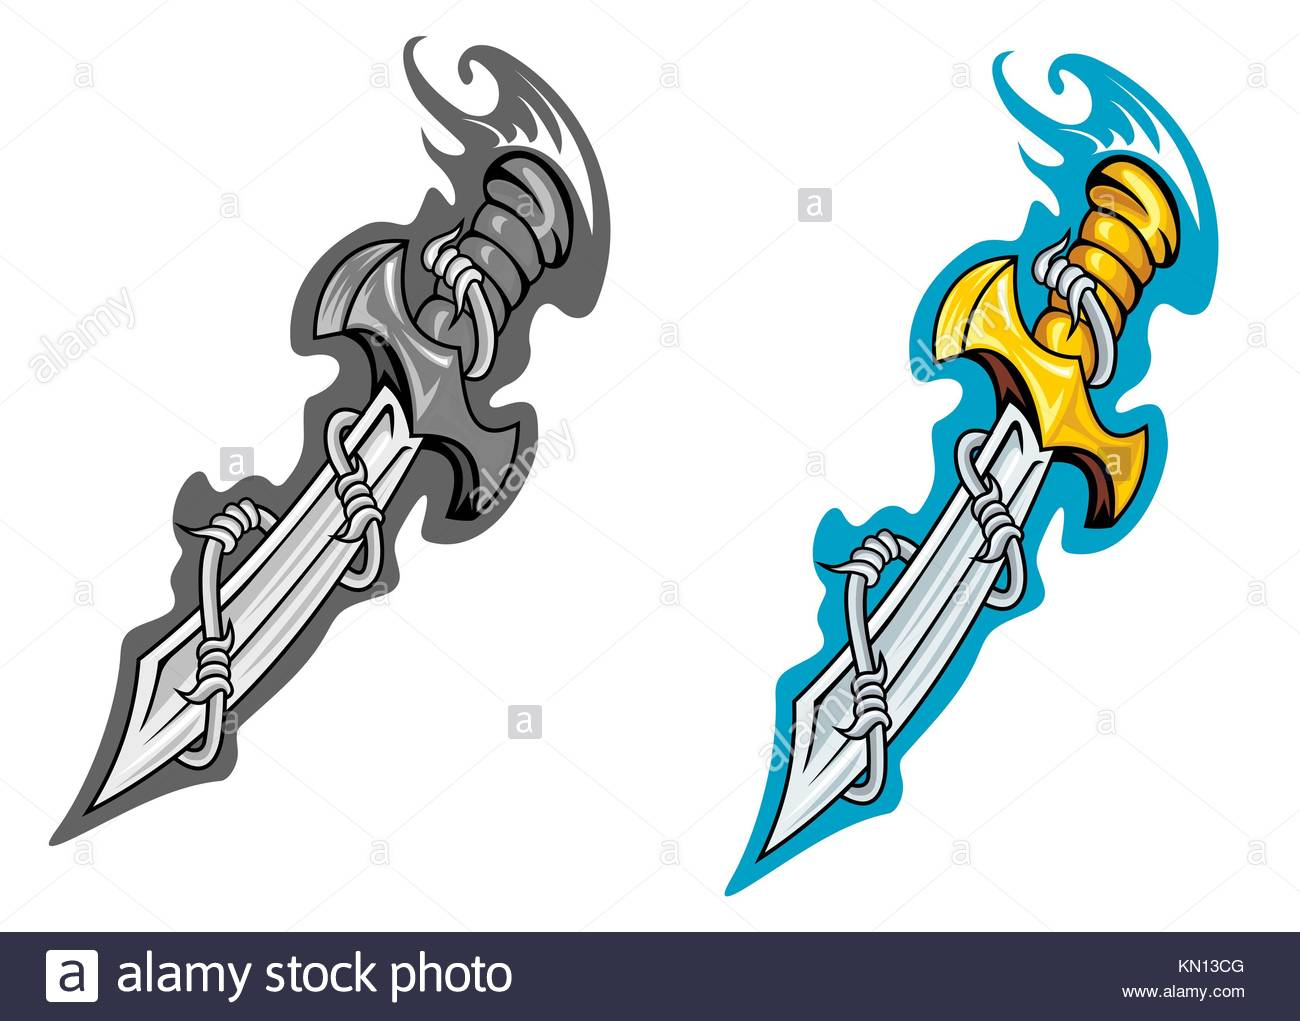 Barbed Wire Tattoo Cut Out Stock Images & Pictures - Alamy